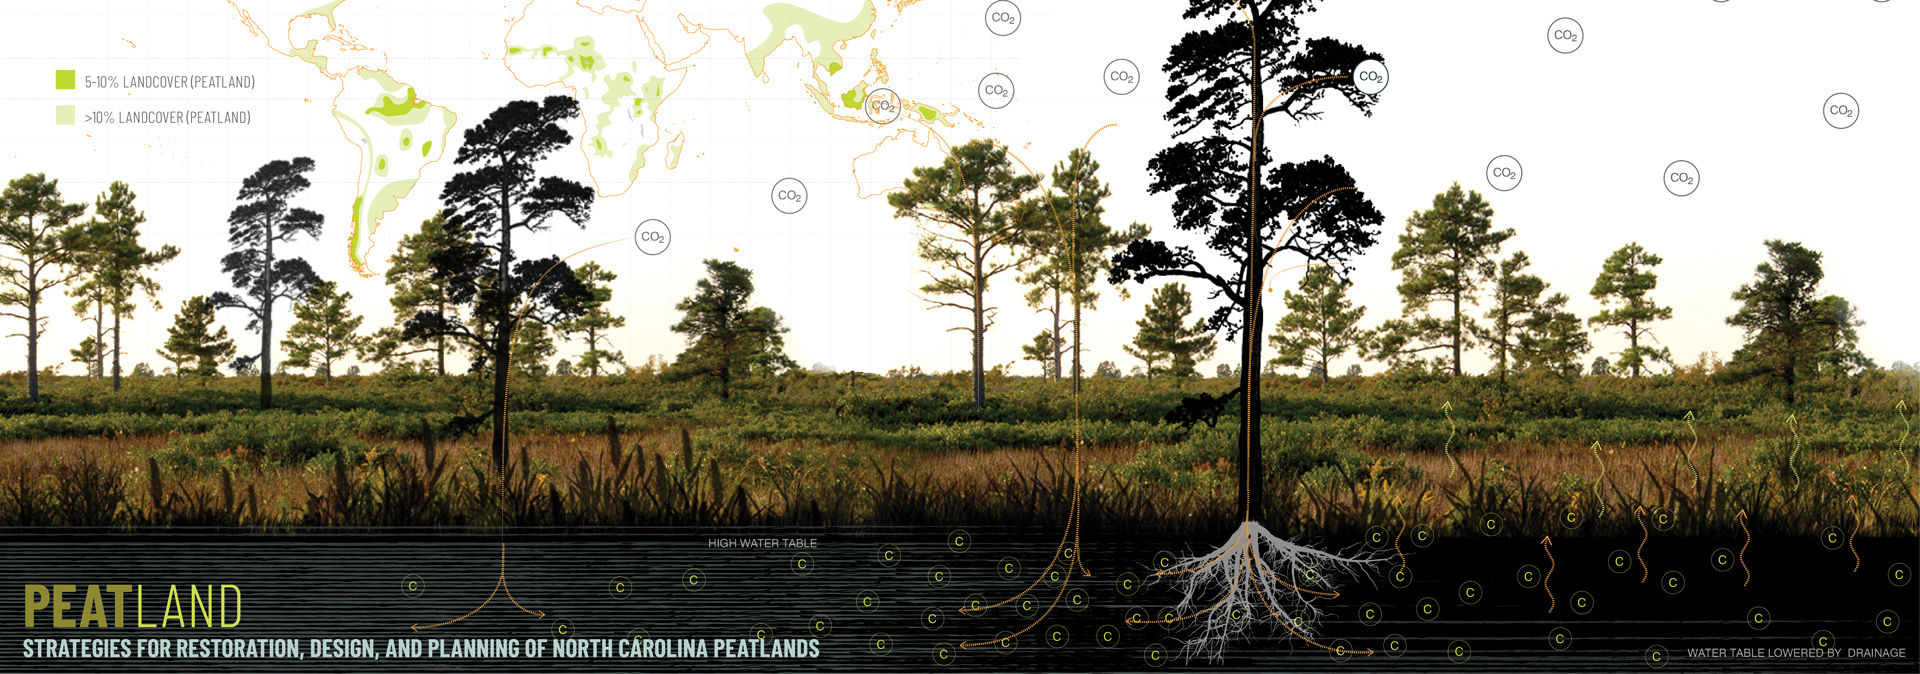 Exploring Coastal Conservation: Students and Faculty Win ASLA Awards to Preserve NC